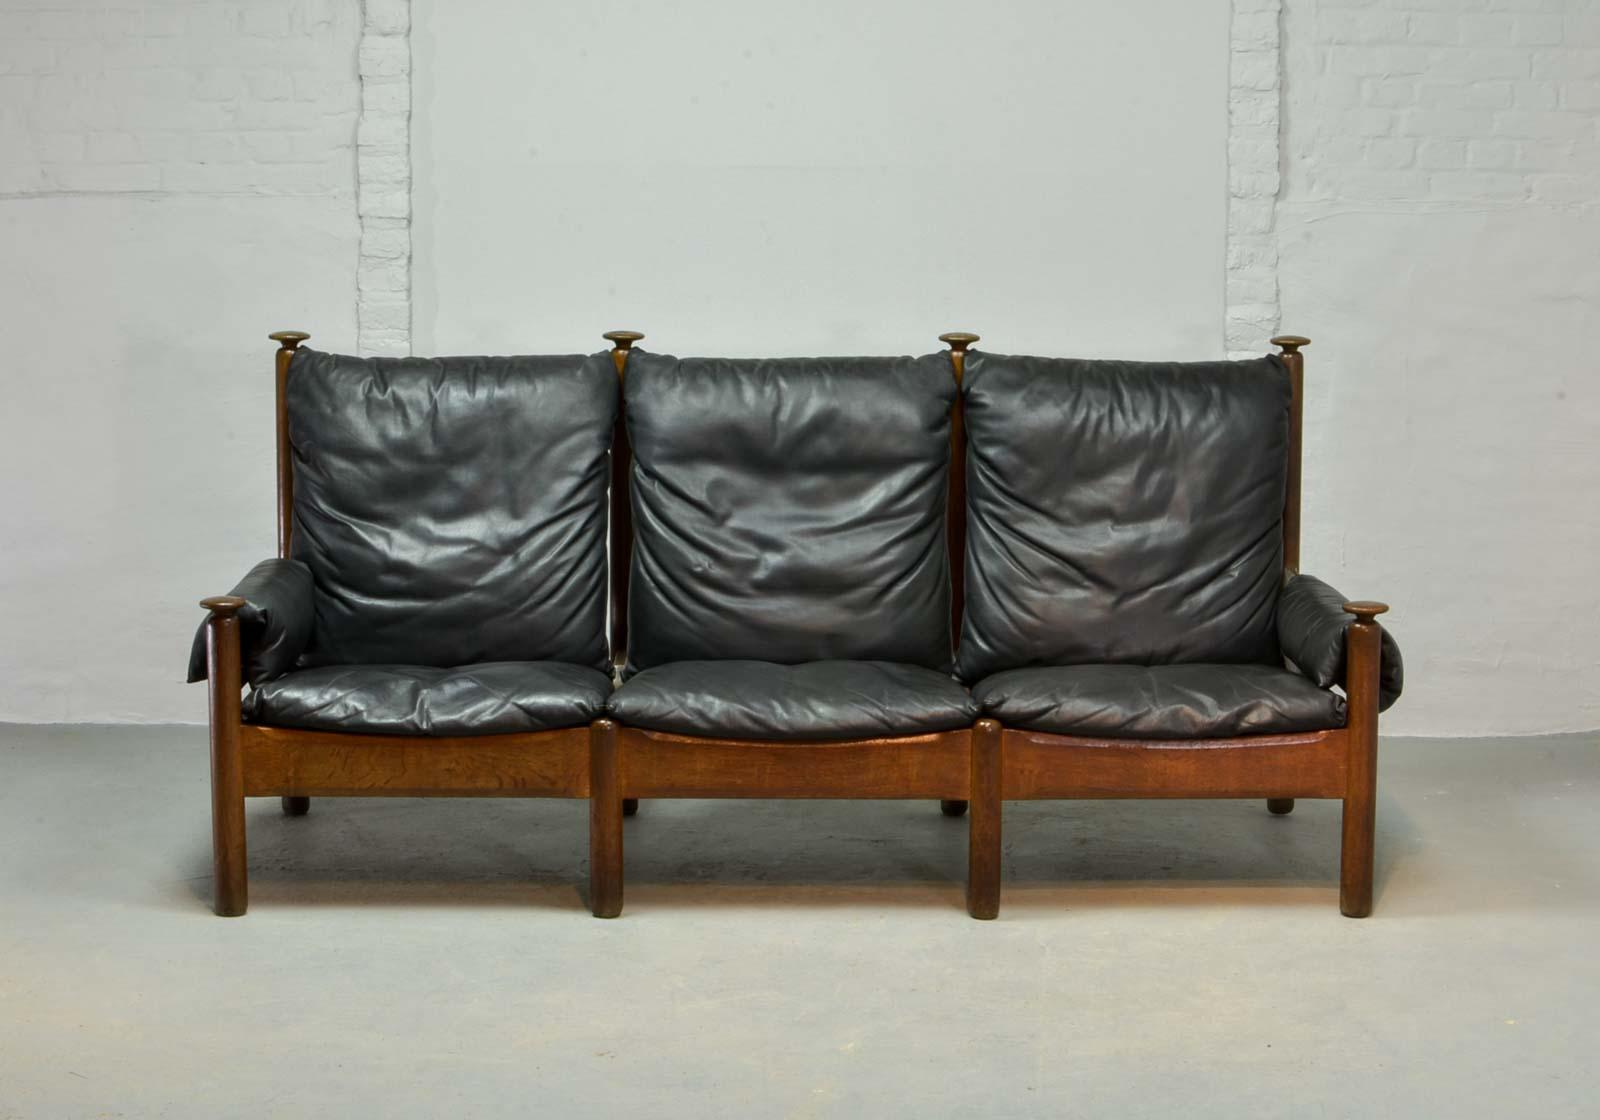 Incroyable Sturdy Mid Century Soft Black Leather Scandinavian Sofa Produced In The  1960s In Style Of